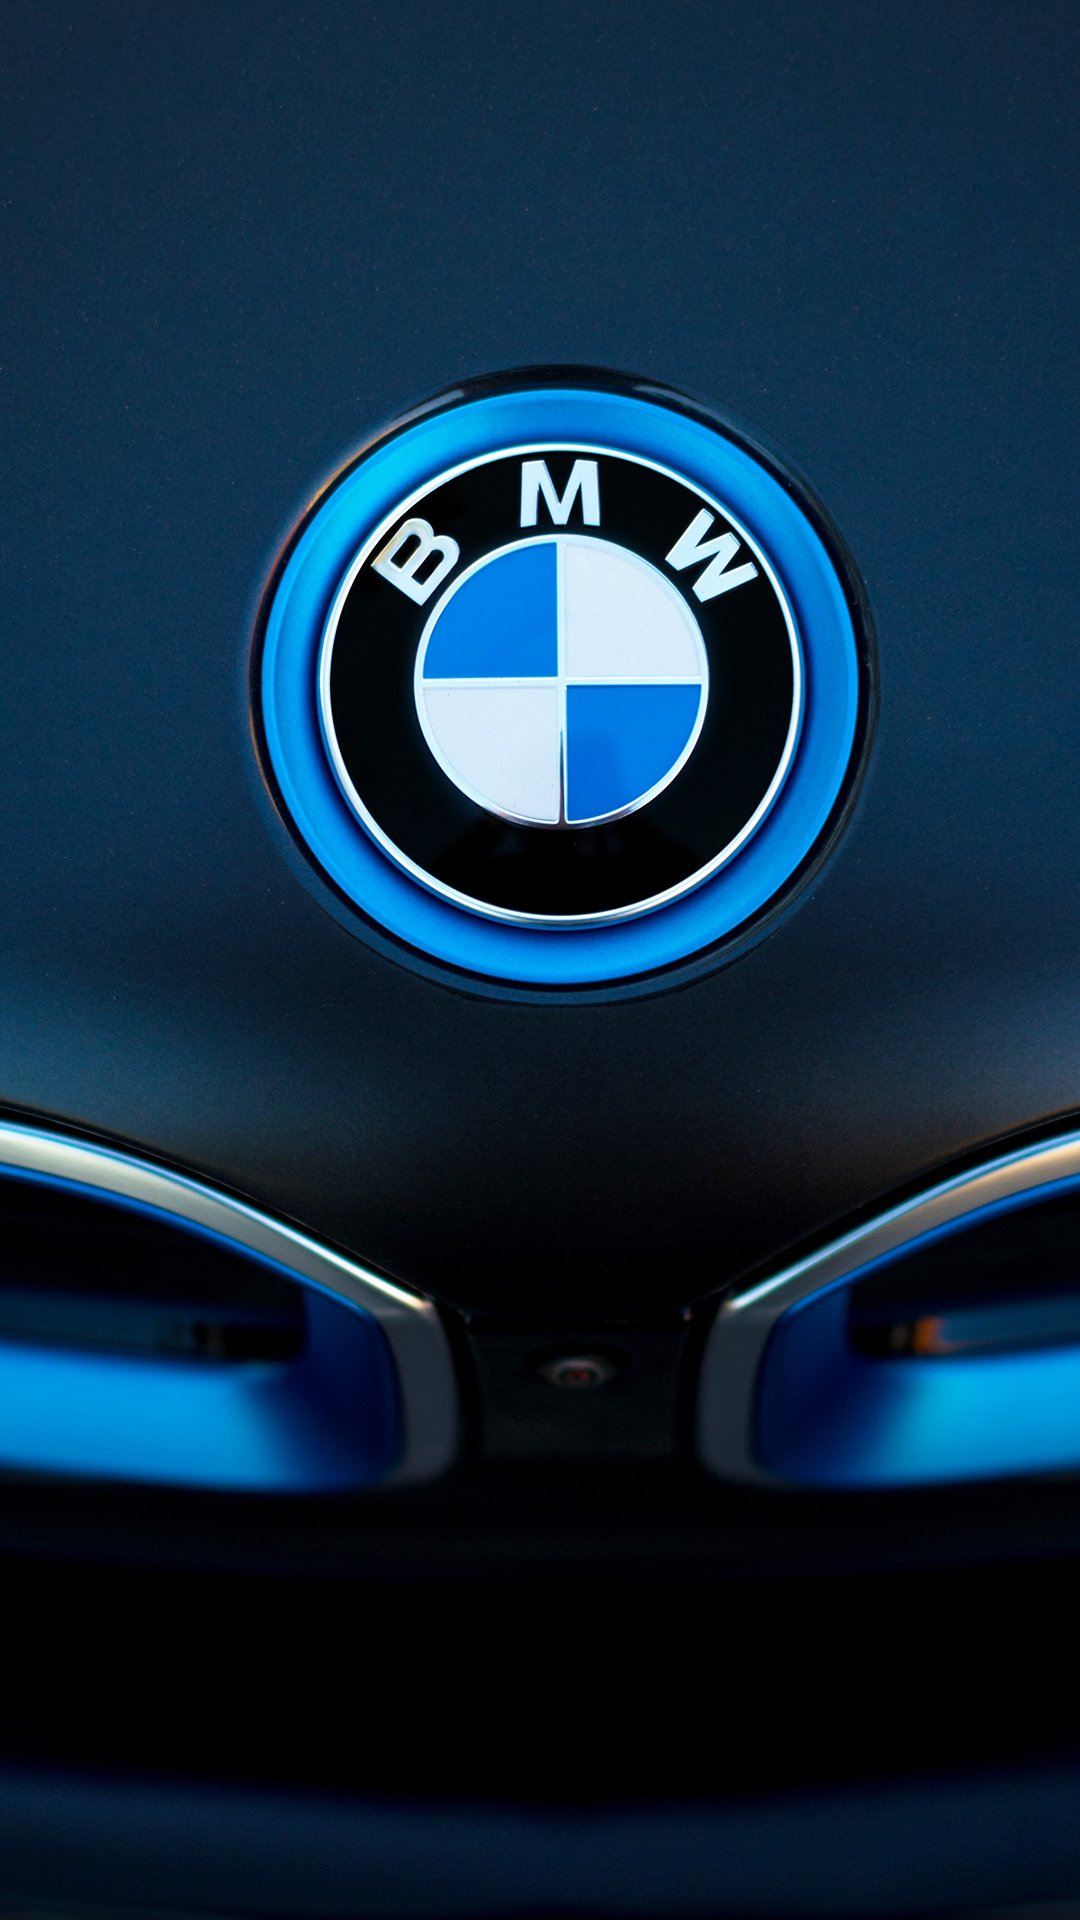 BMW Phone Wallpapers   Top BMW Phone Backgrounds 1080x1920